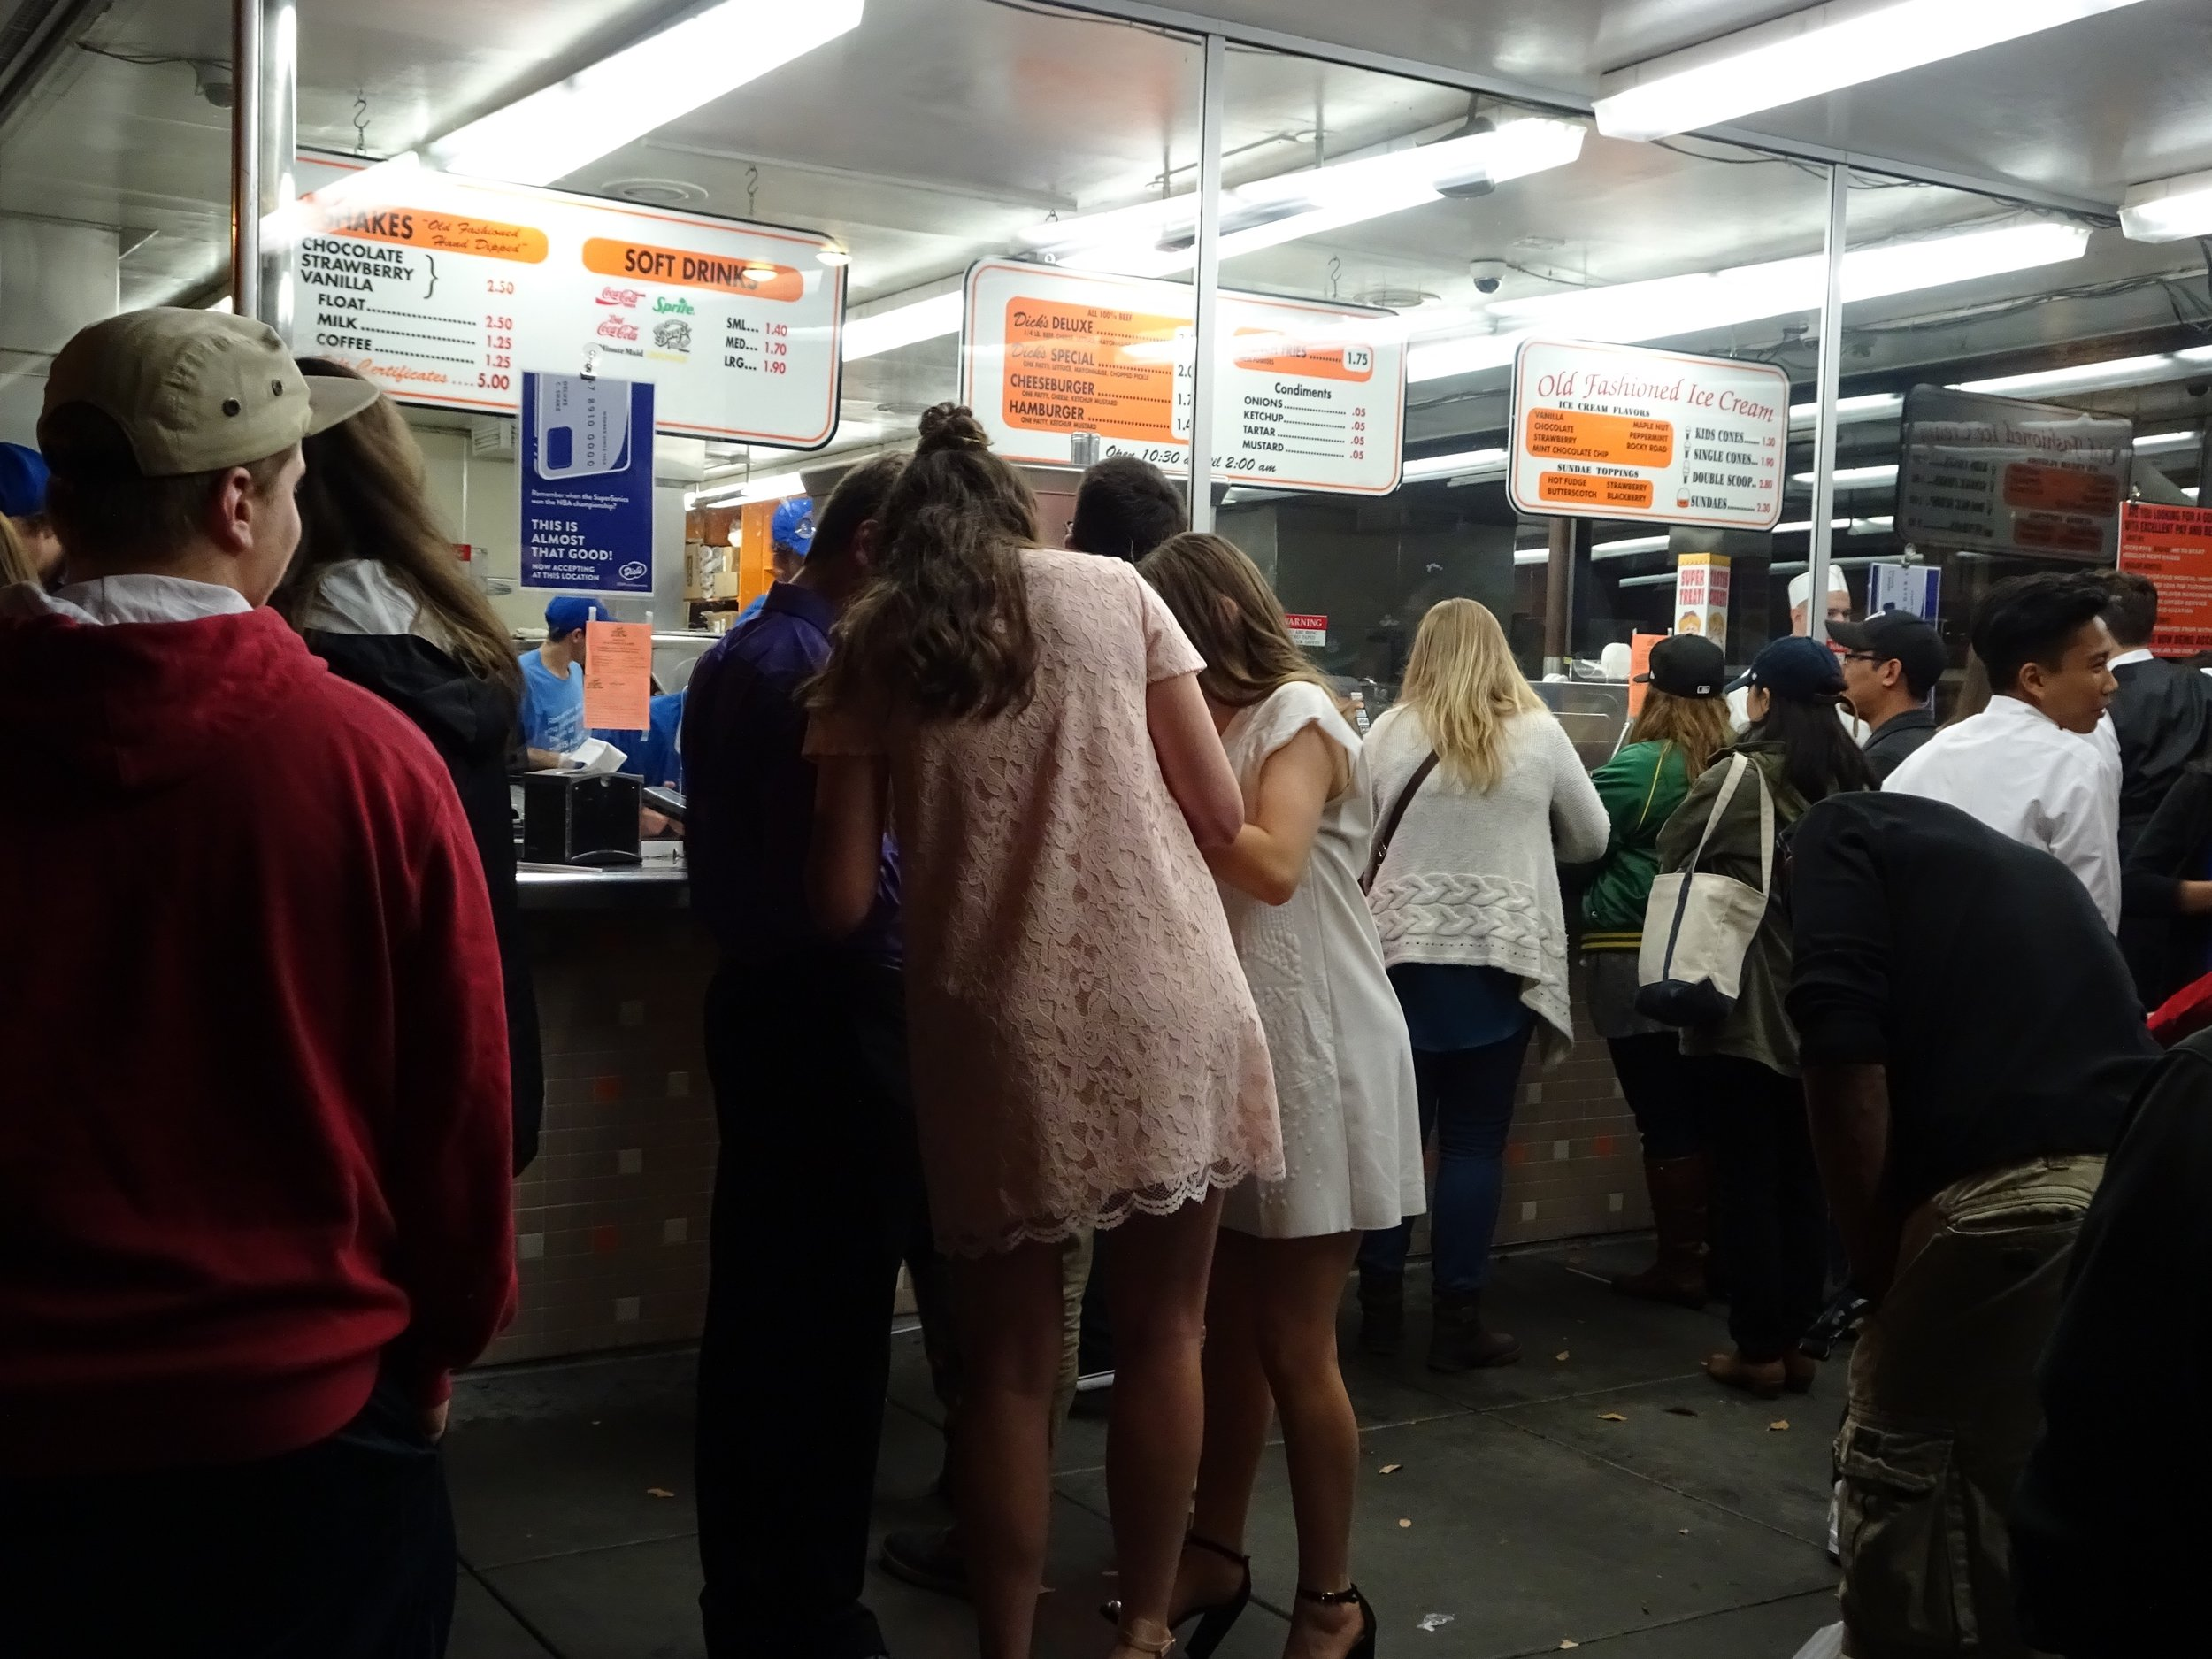 late night crowd at dick's, seattle, washington - m.quigley